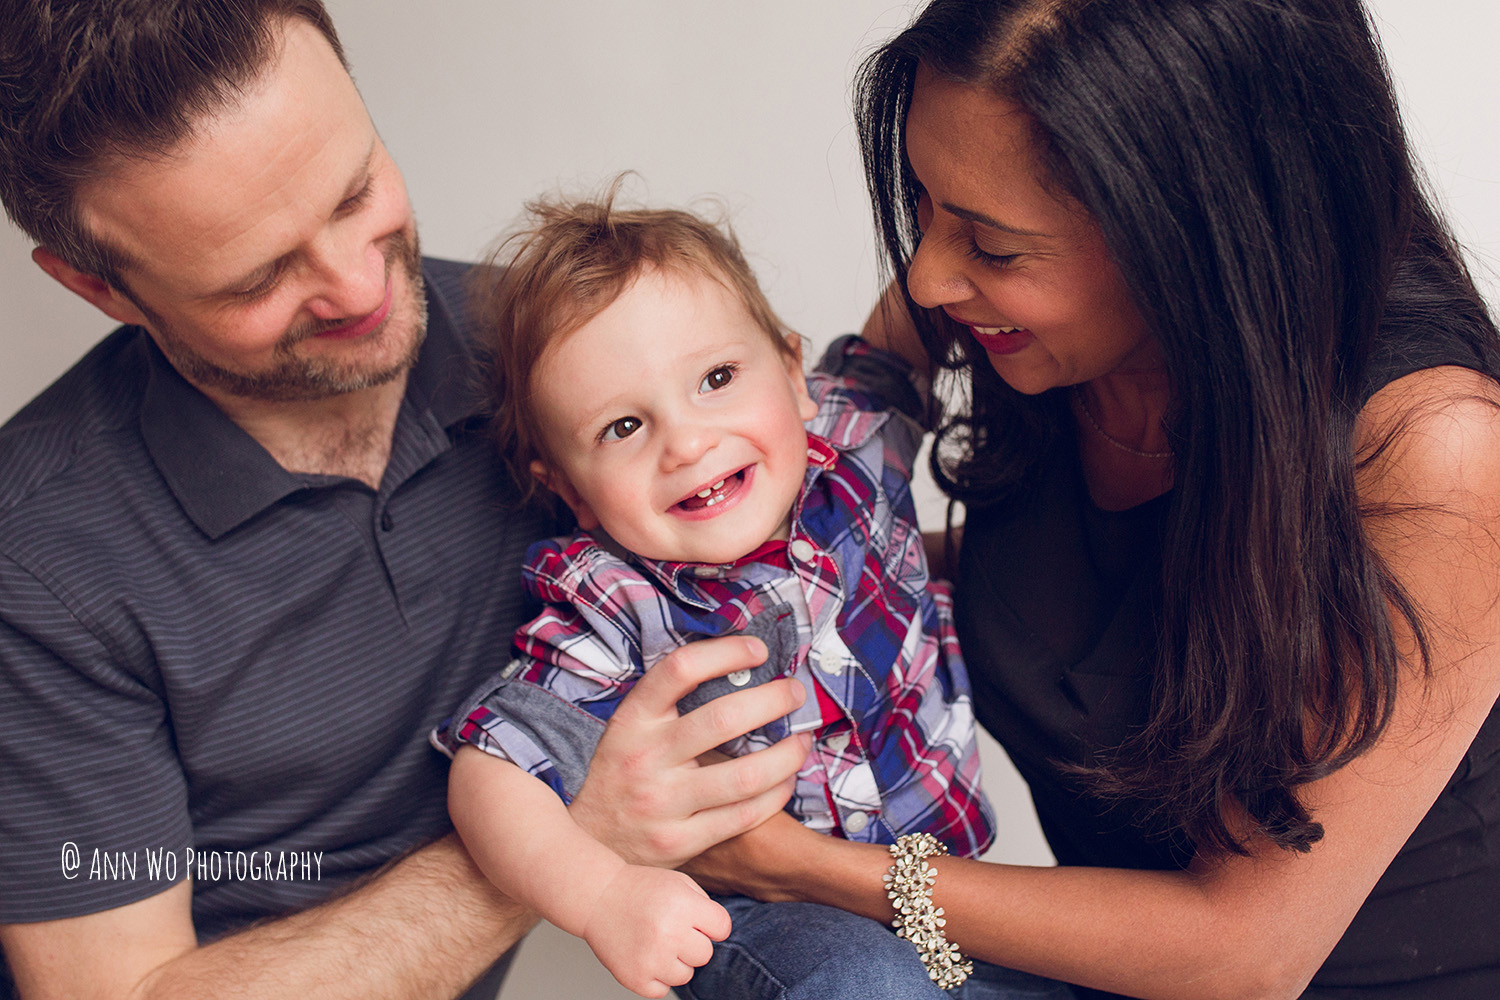 ann-wo-child-photograph-london-lifestyle-session-toddler-boy-family-pictures-09.JPG